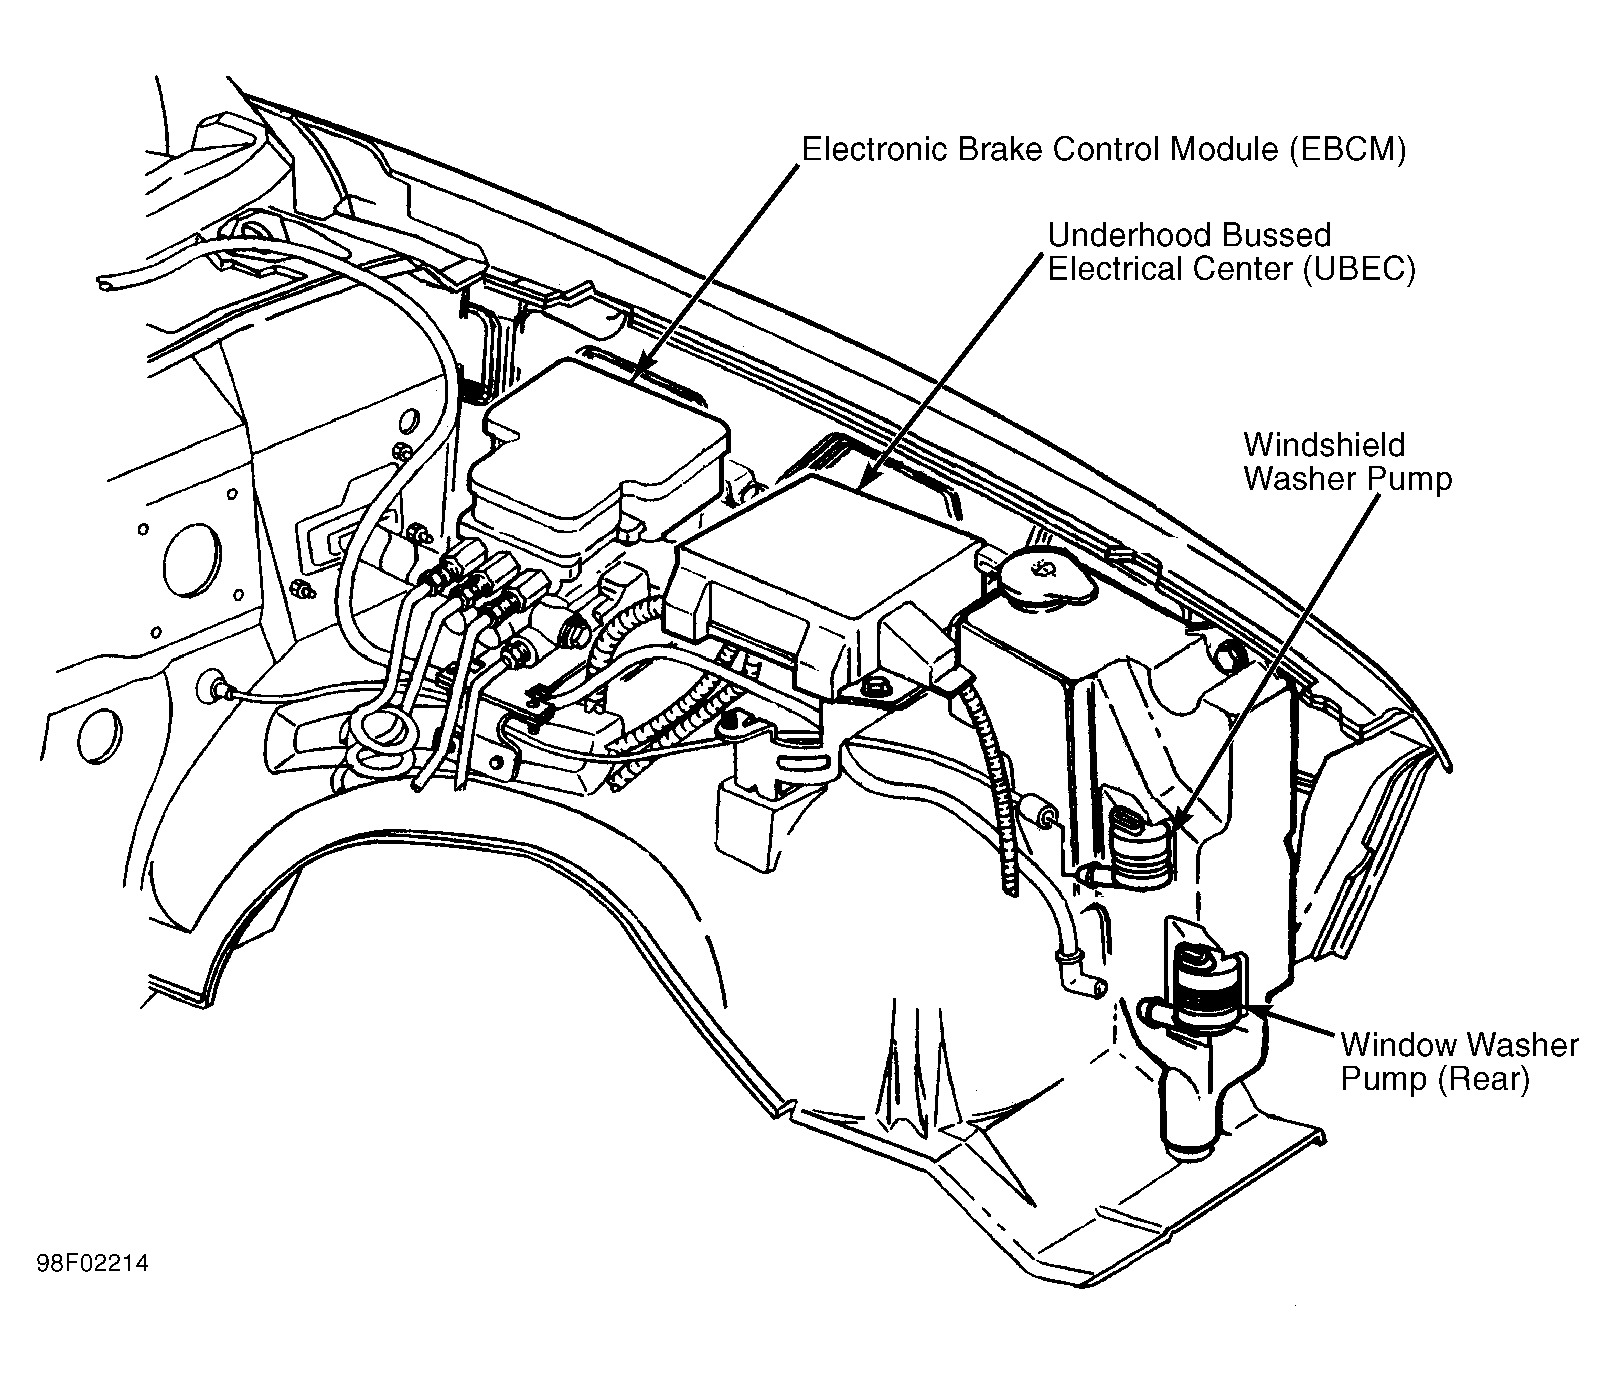 1998 Gmc Safari Fuse Diagram | Wiring Diagram Database